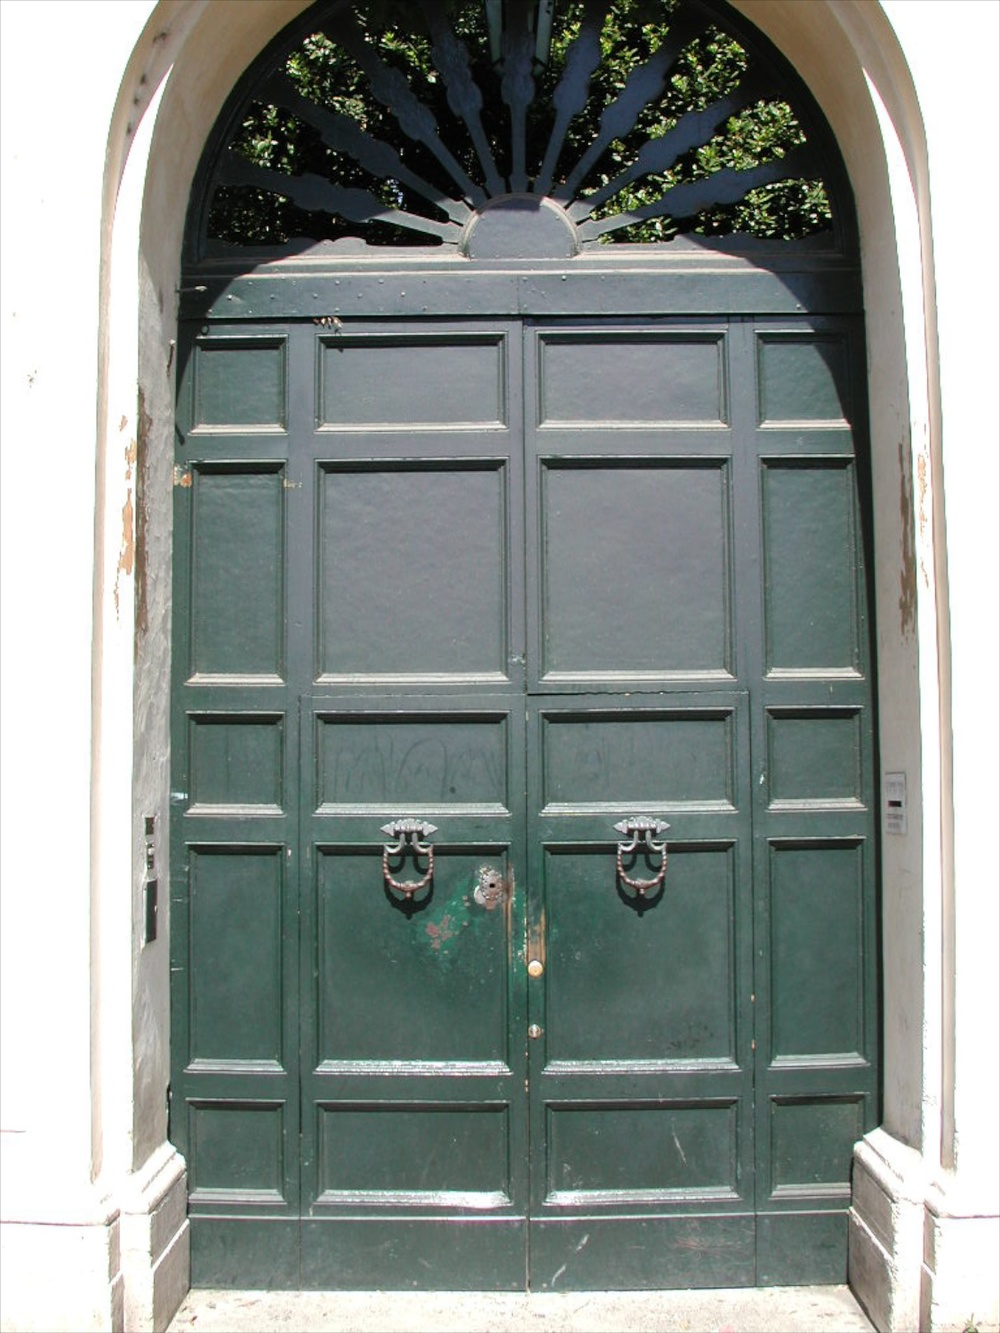 Door 1 Rome 04/2002   © photo by AJ Weissbard